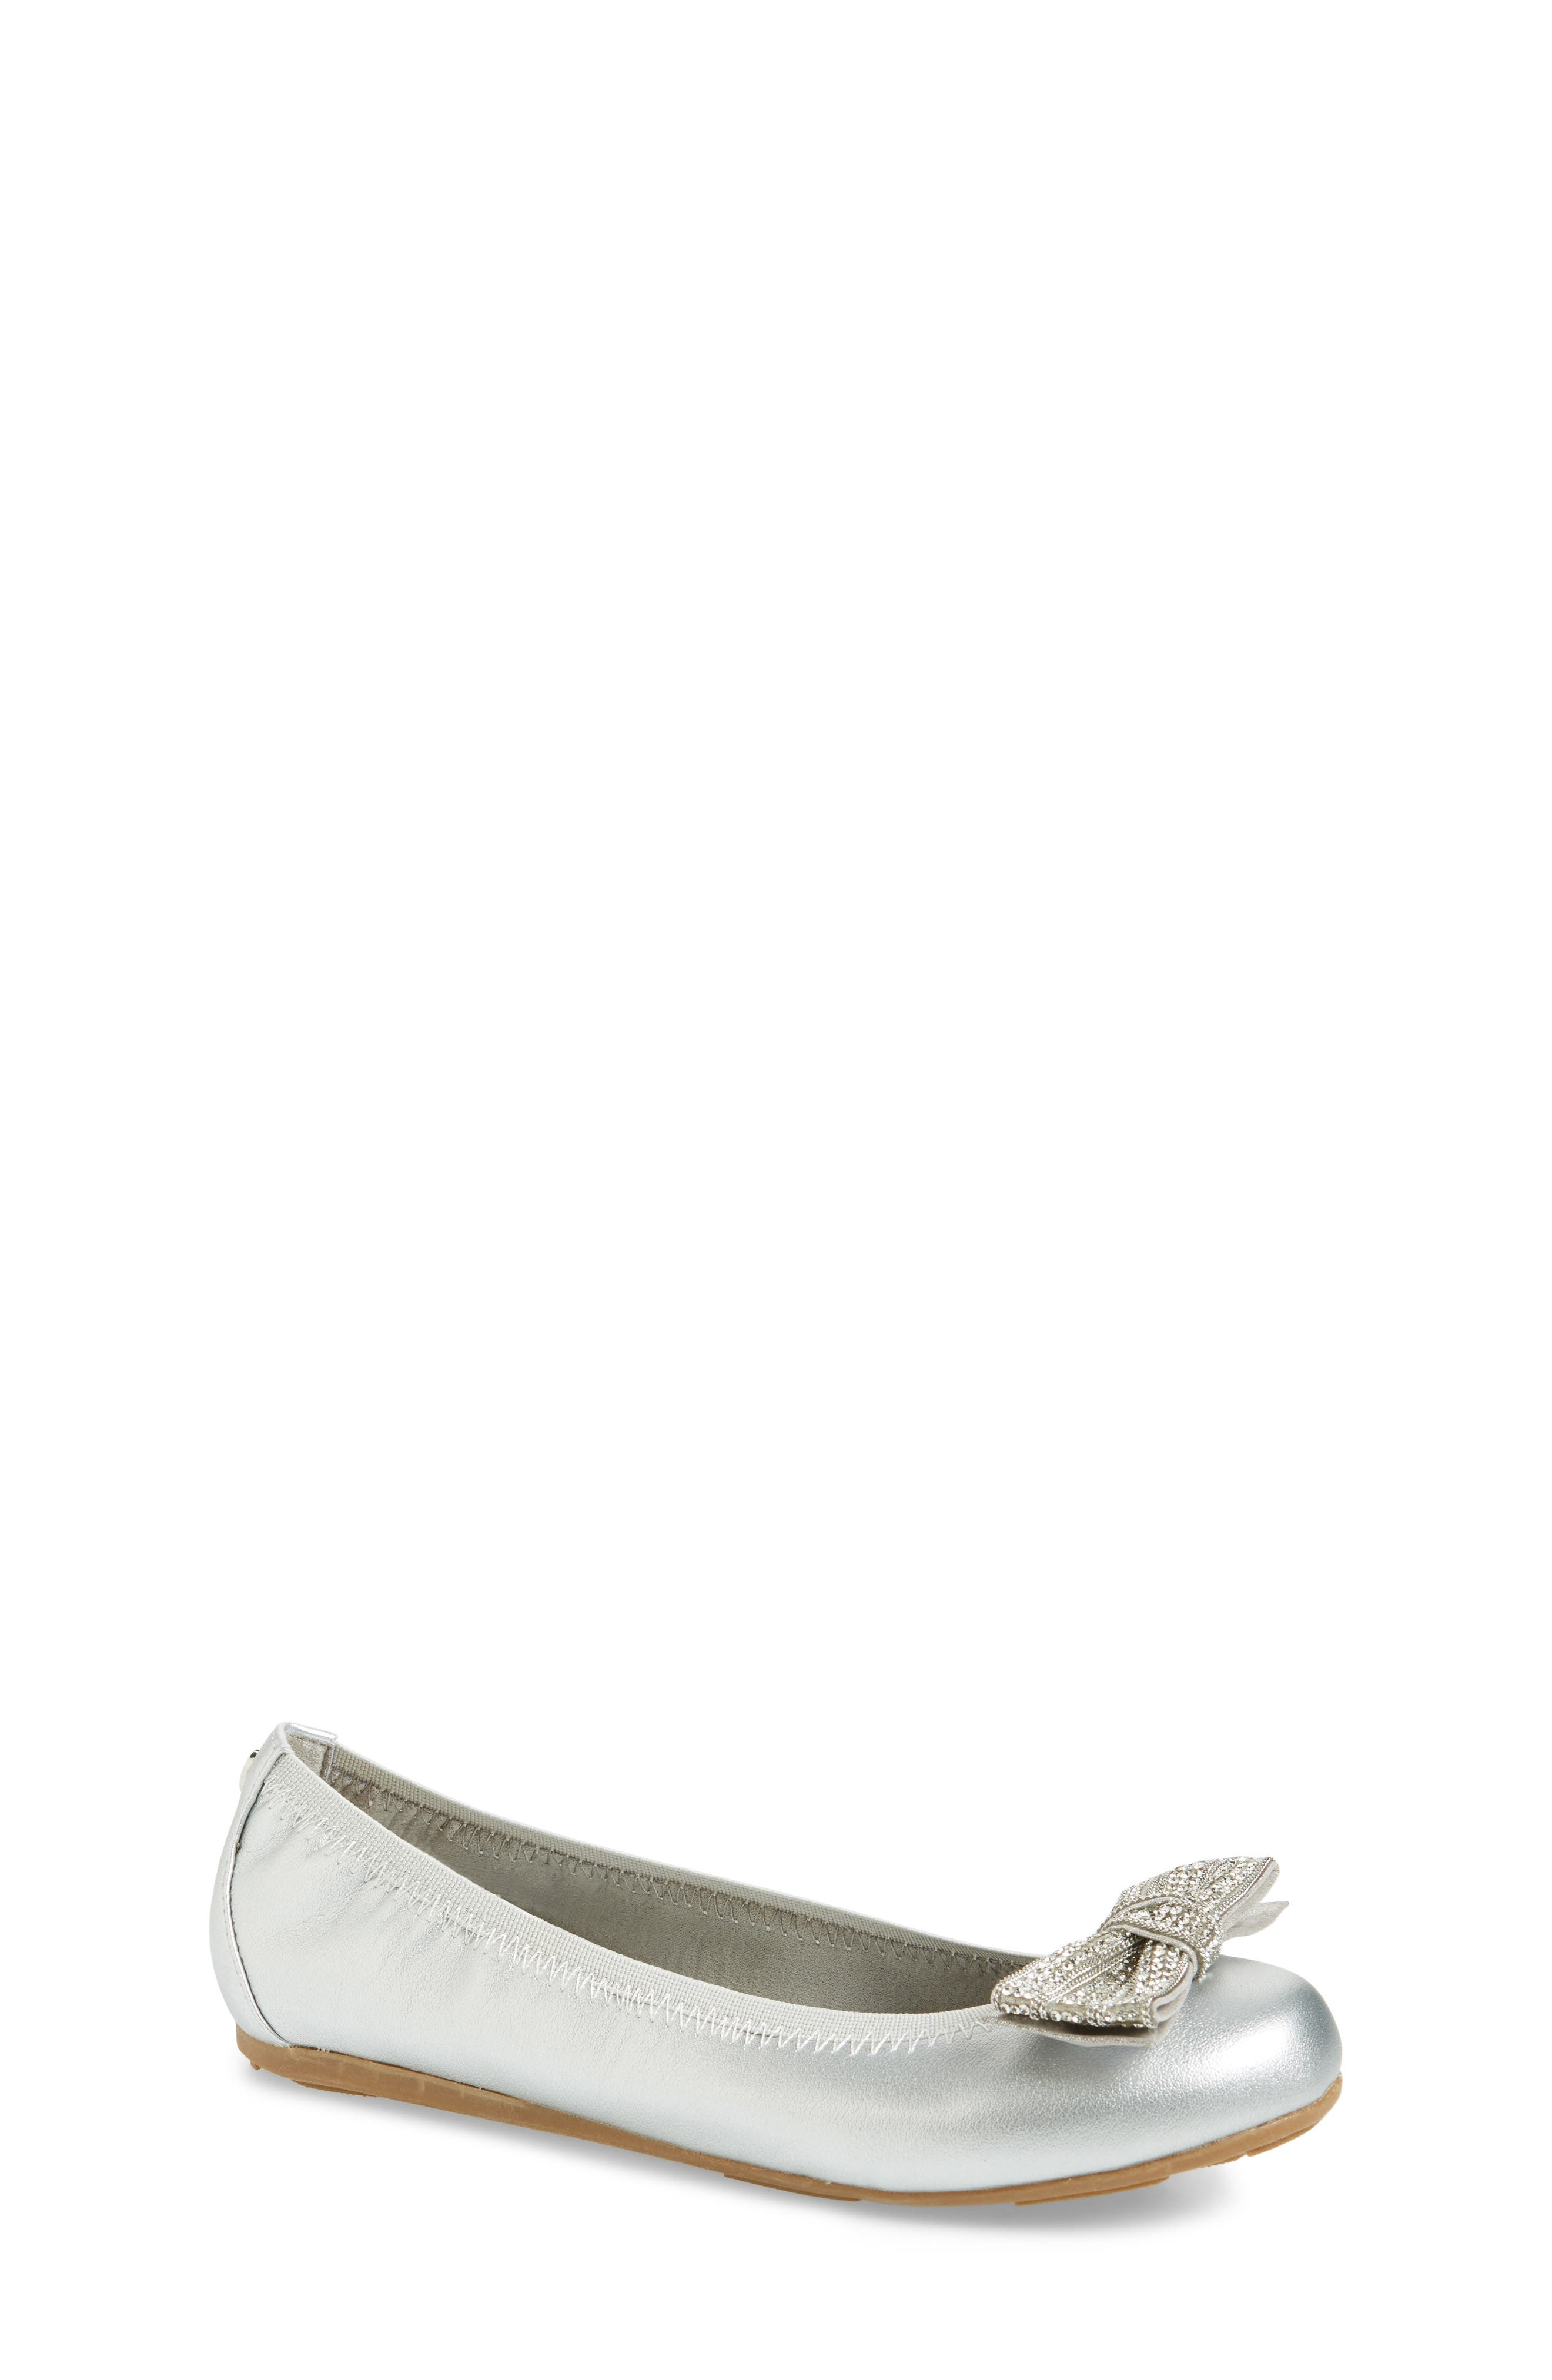 Fannie Embellished Bow Ballet Flat,                             Main thumbnail 1, color,